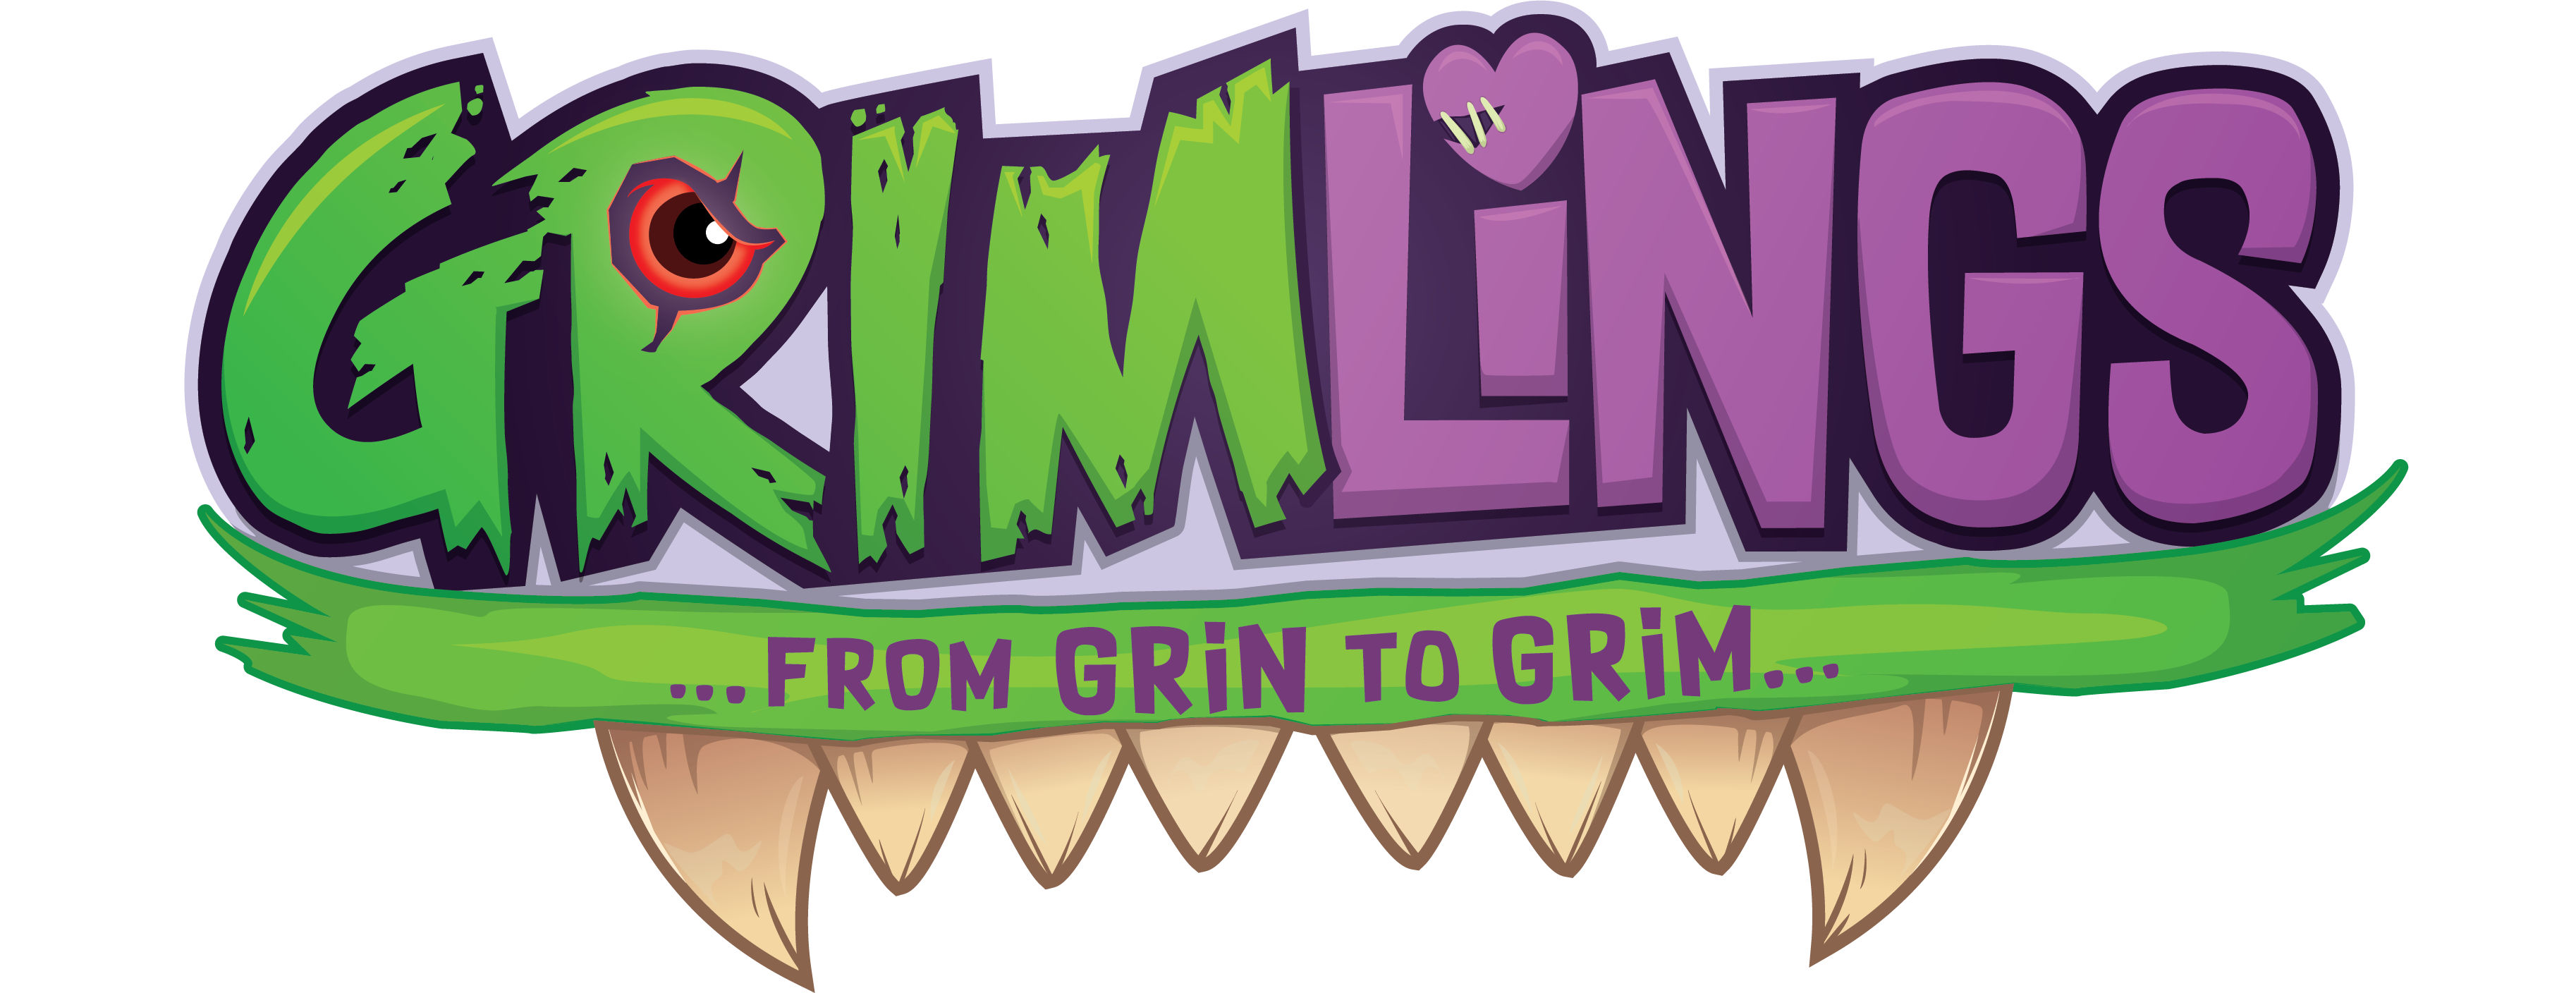 Grimlings by Wowwee